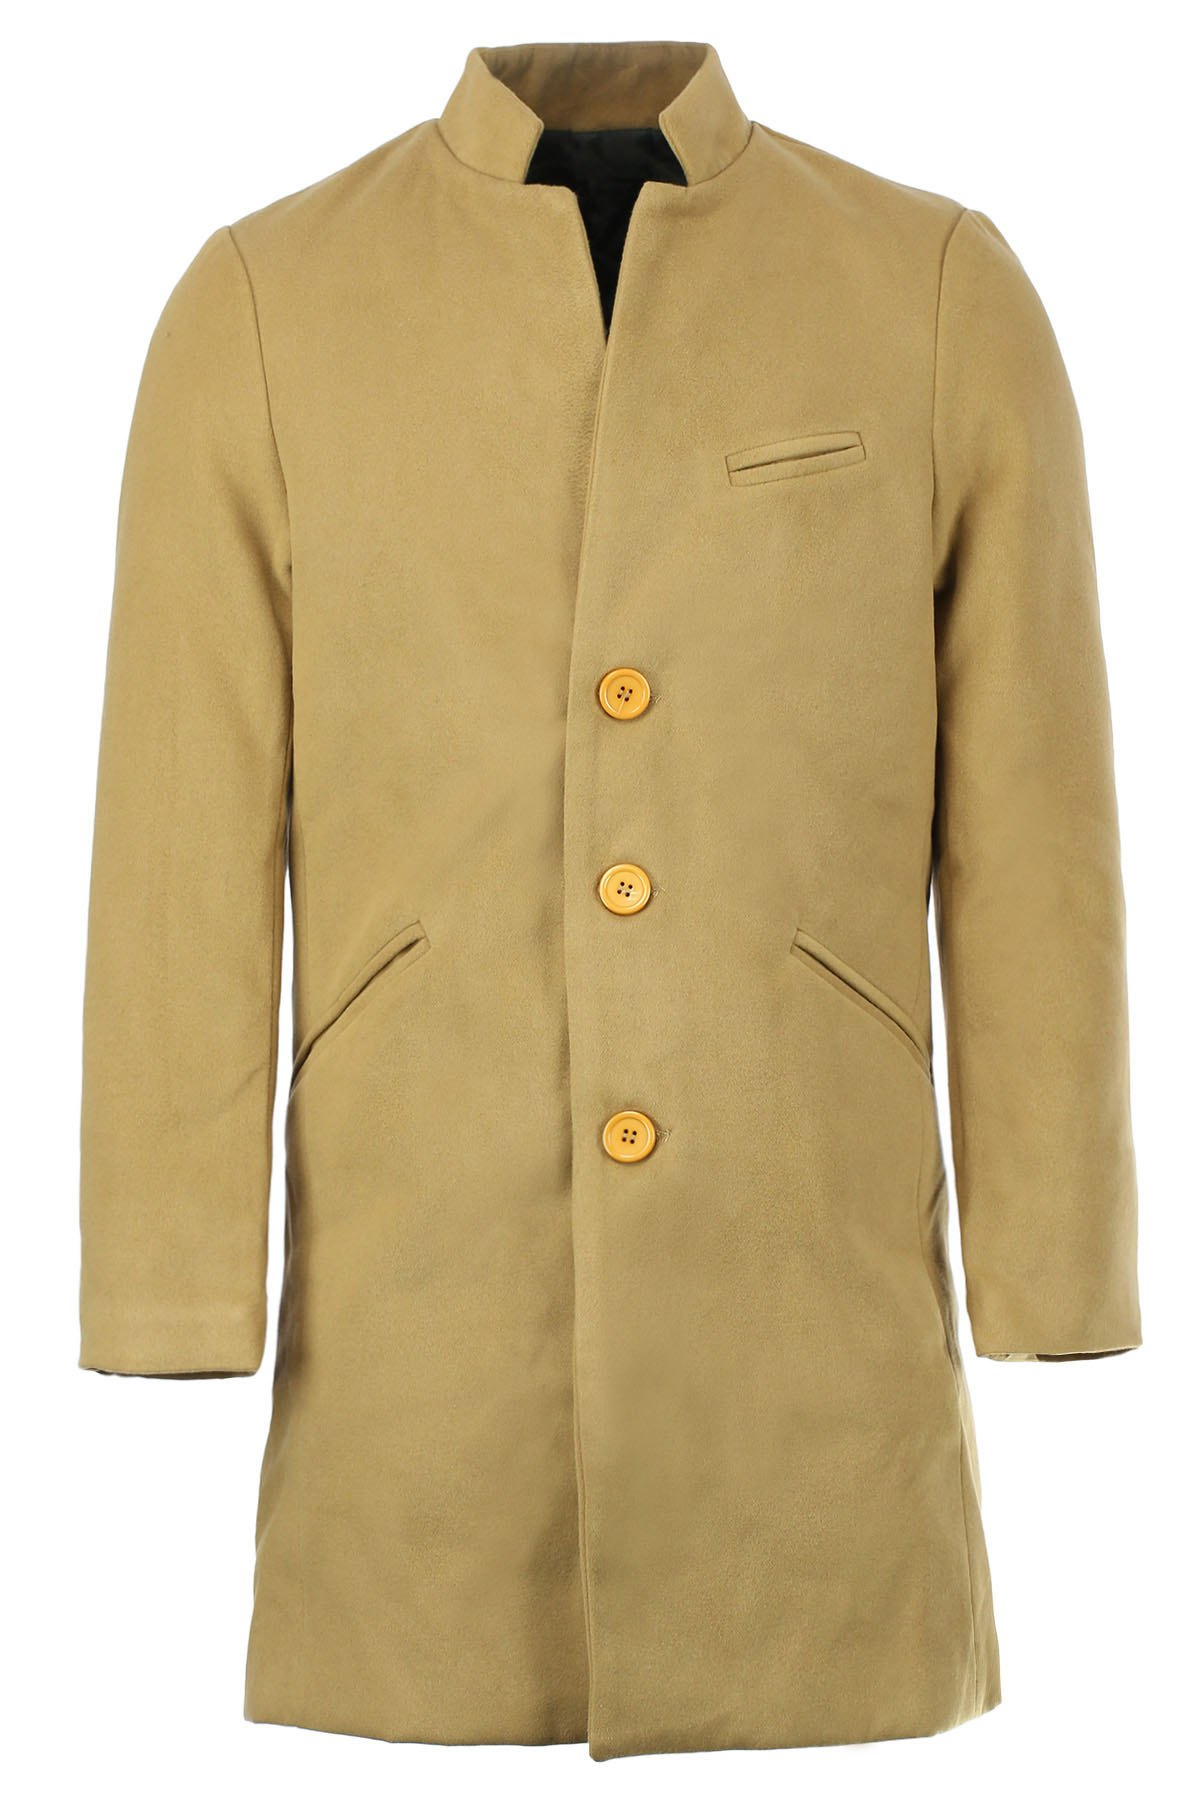 Casual Stand Collar Long Sleeve Solid Color Woolen Trench Coat For Men - KHAKI 2XL